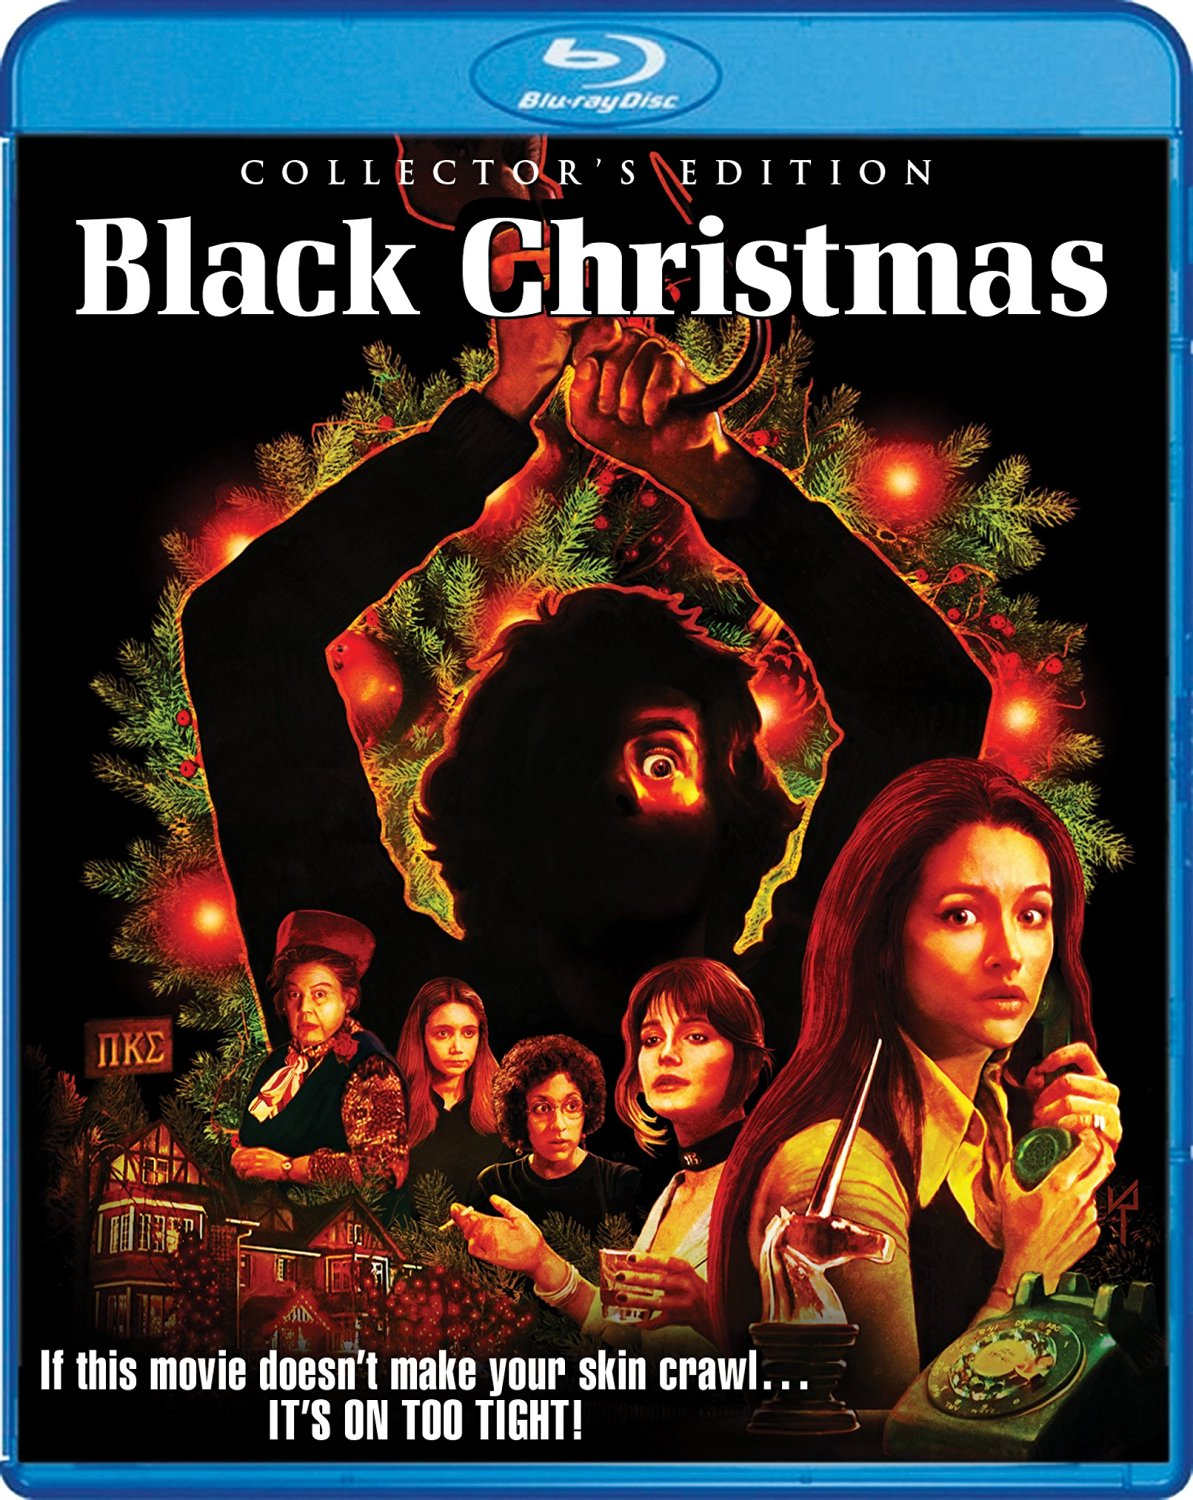 Black Christmas [Movie] - Black Christmas [Collector's Edition]